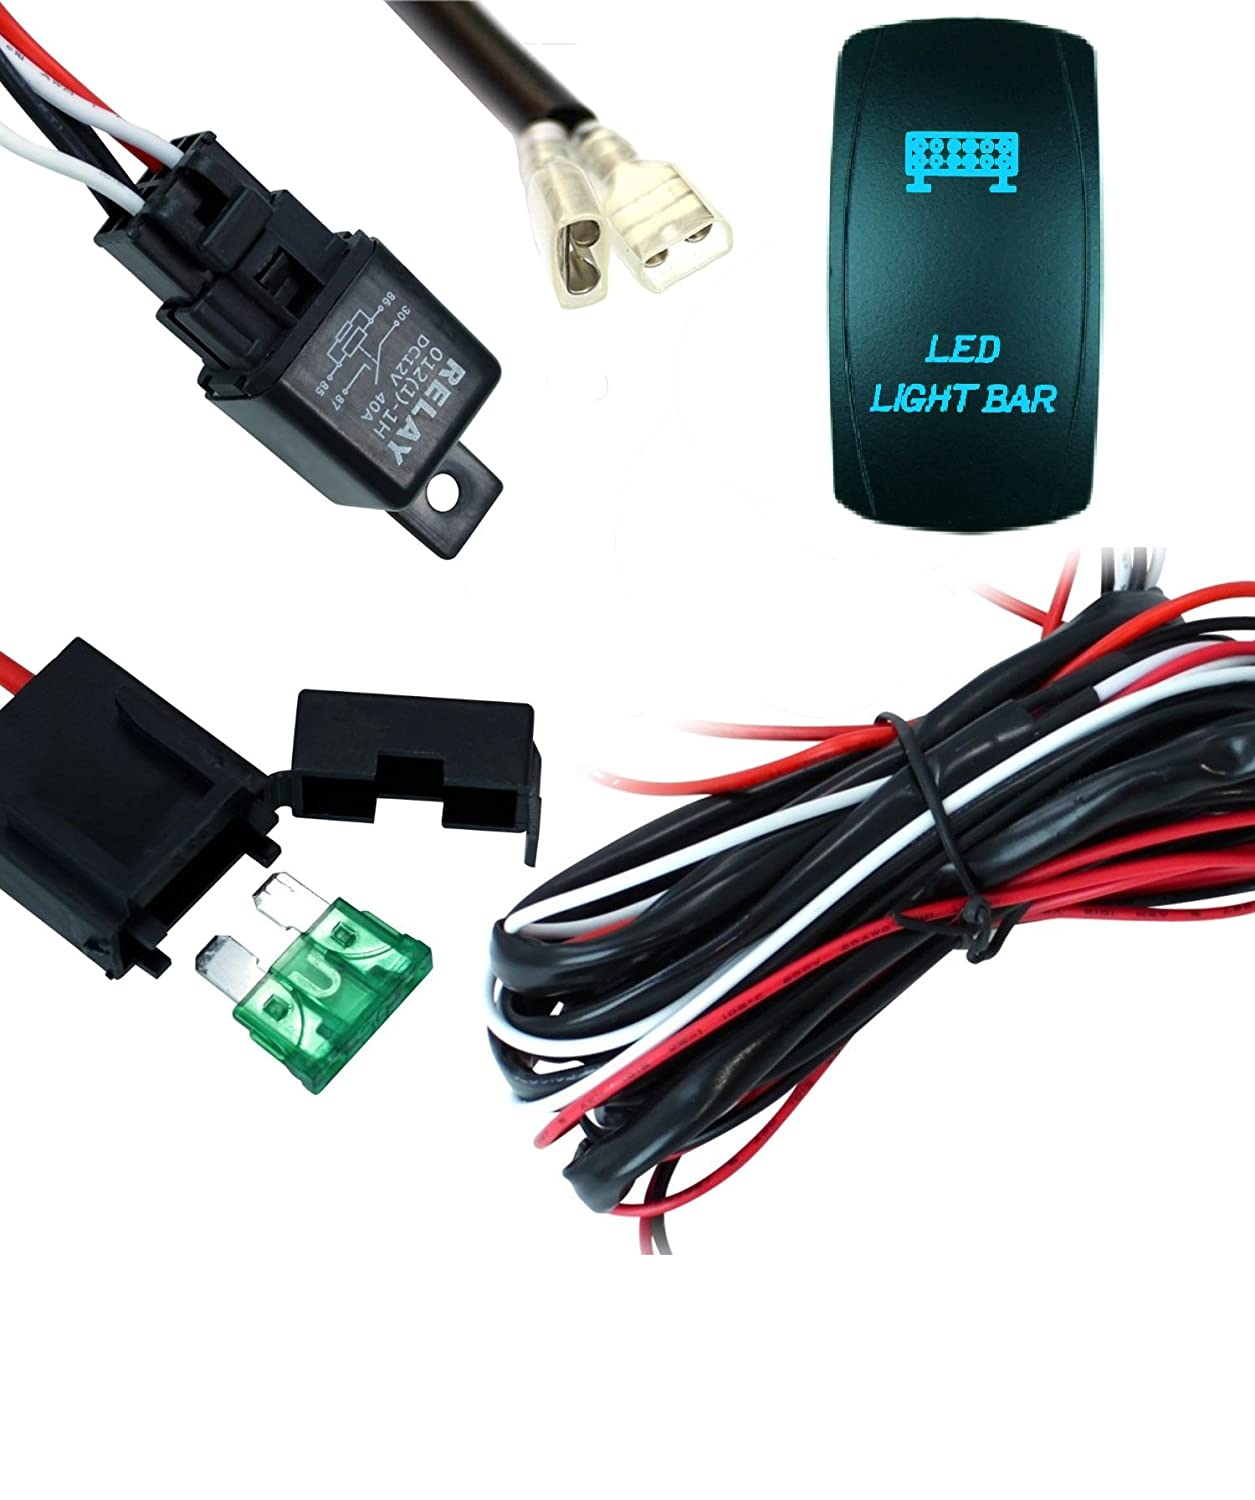 Amazon.com: STV Motorsports WIRING HARNESS KIT FOR LED WORK ... on nakamichi harness, engine harness, pet harness, battery harness, amp bypass harness, pony harness, safety harness, radio harness, obd0 to obd1 conversion harness, maxi-seal harness, fall protection harness, cable harness, dog harness, alpine stereo harness, suspension harness, electrical harness, oxygen sensor extension harness,